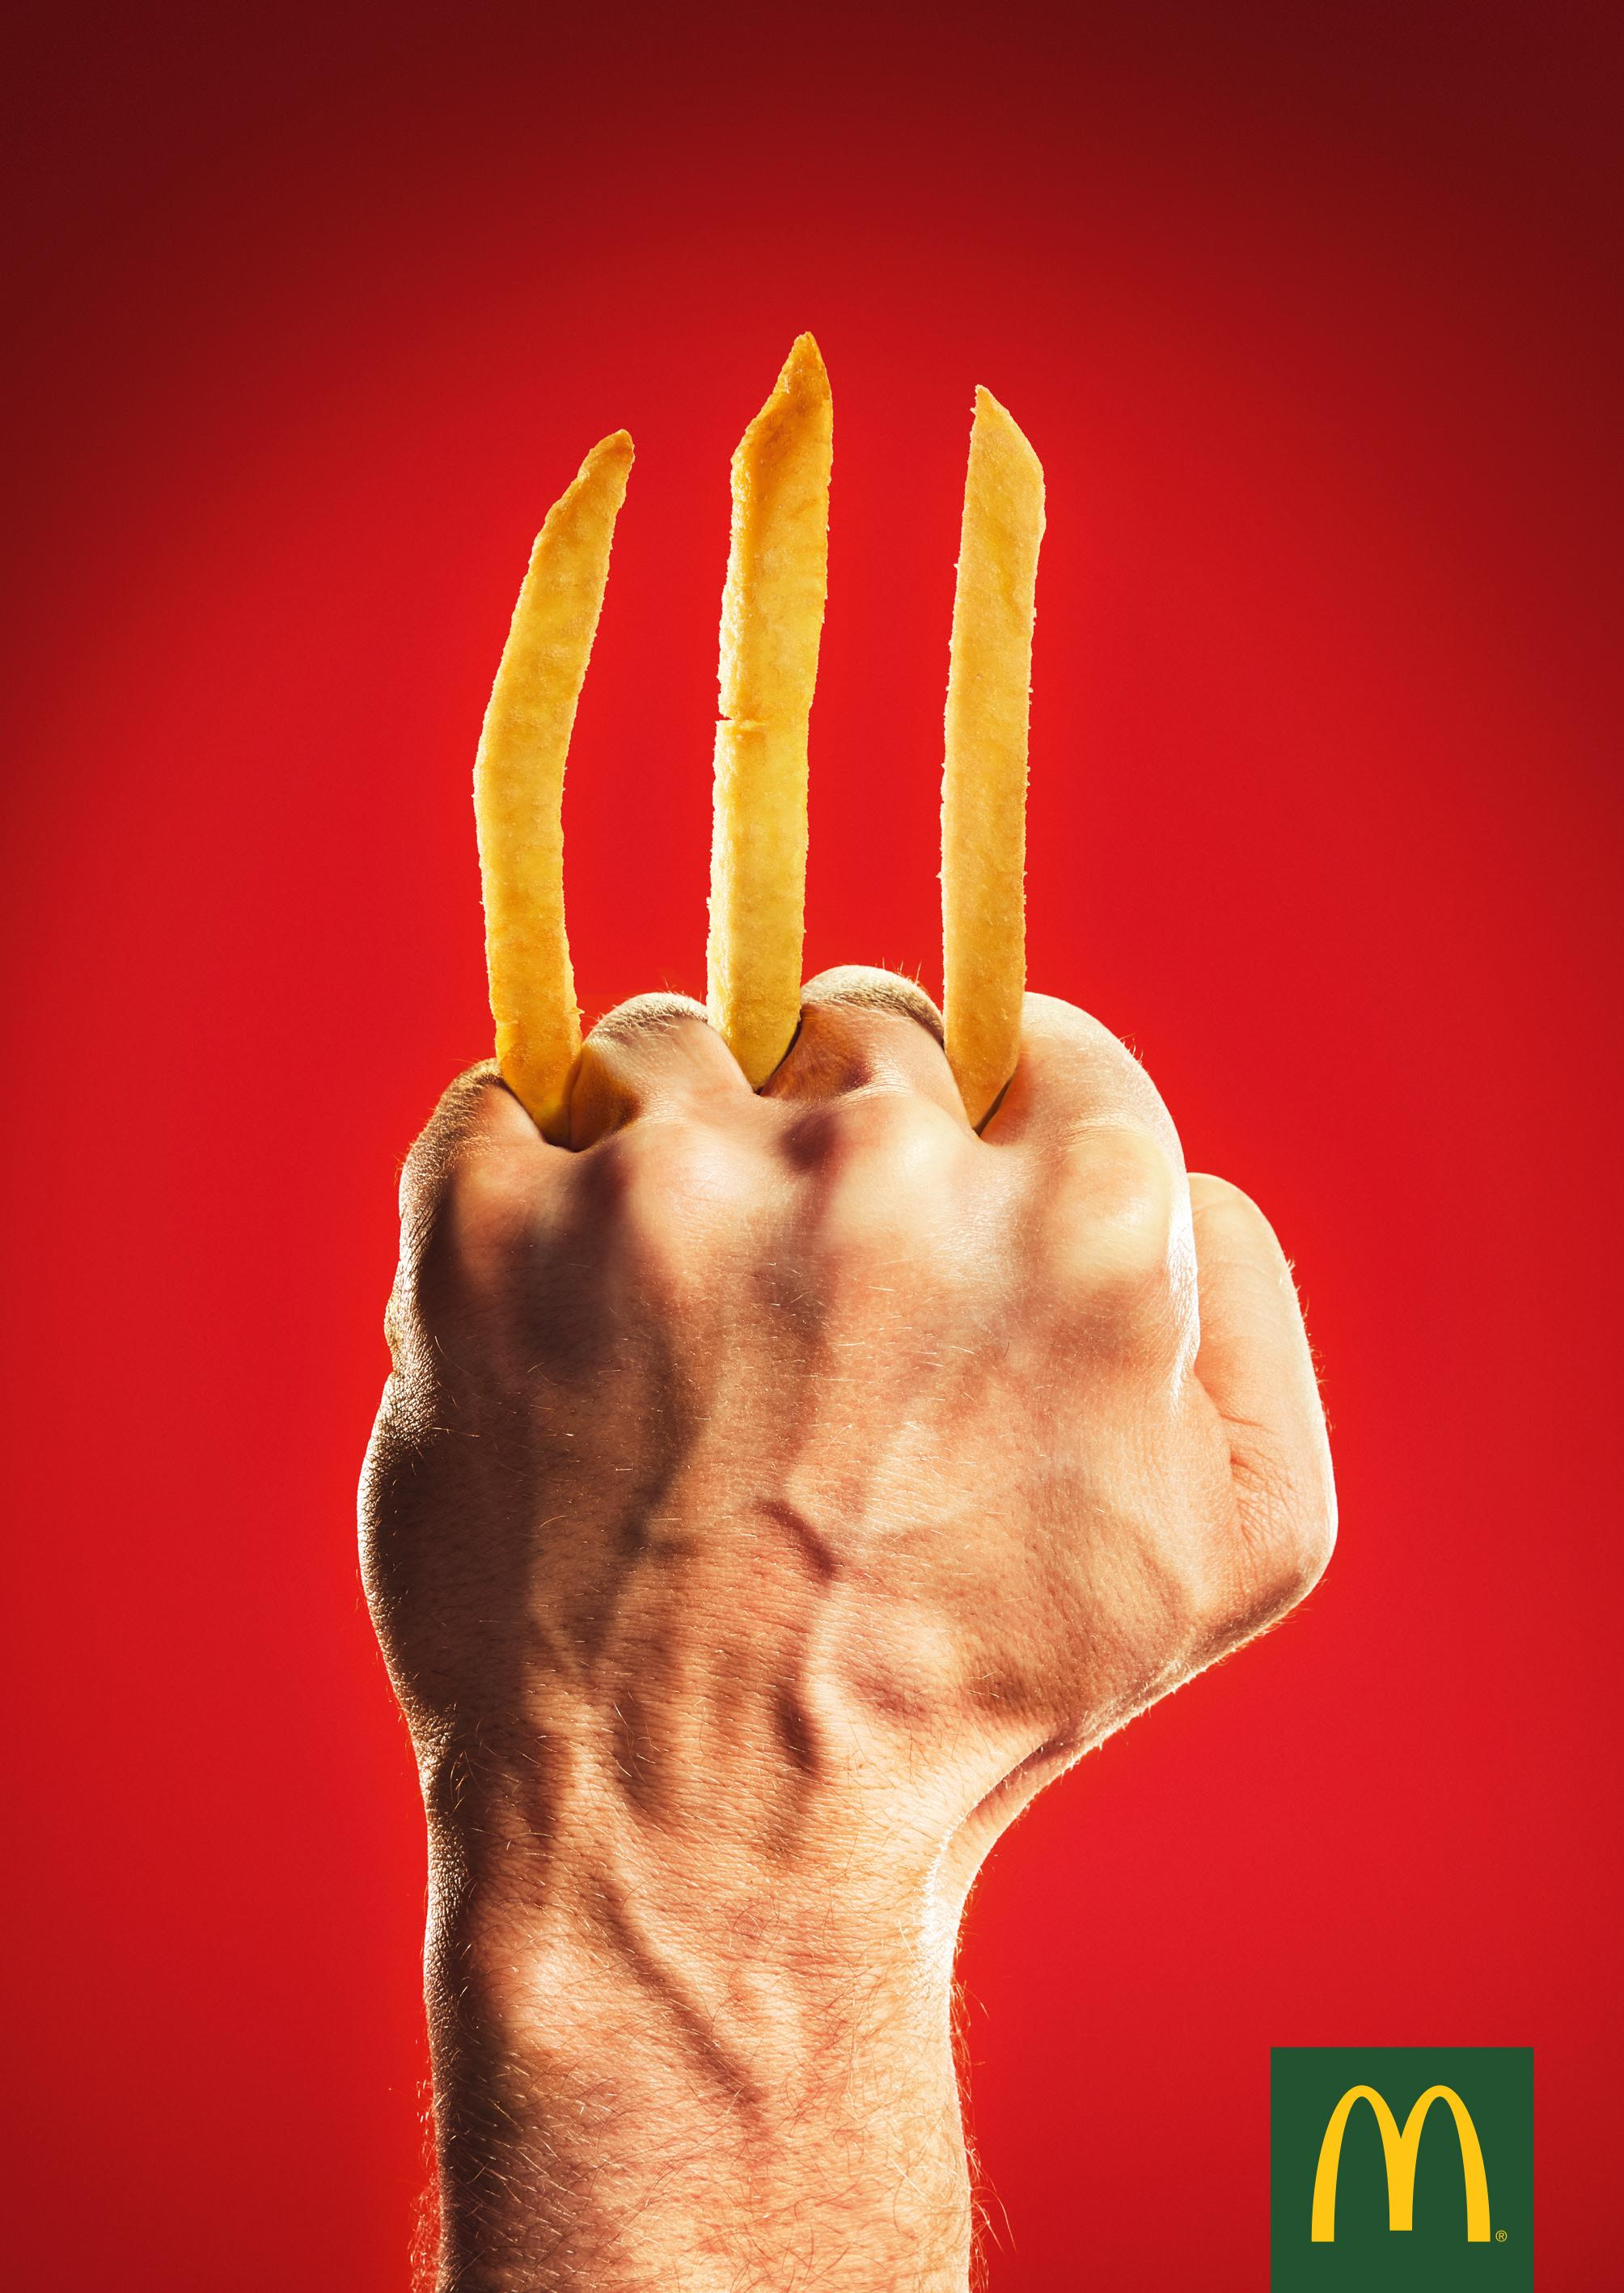 photo relating to Mcdonalds Printable Job Application identify Adeevee Merely chosen creative imagination - McDonalds: Wolverine